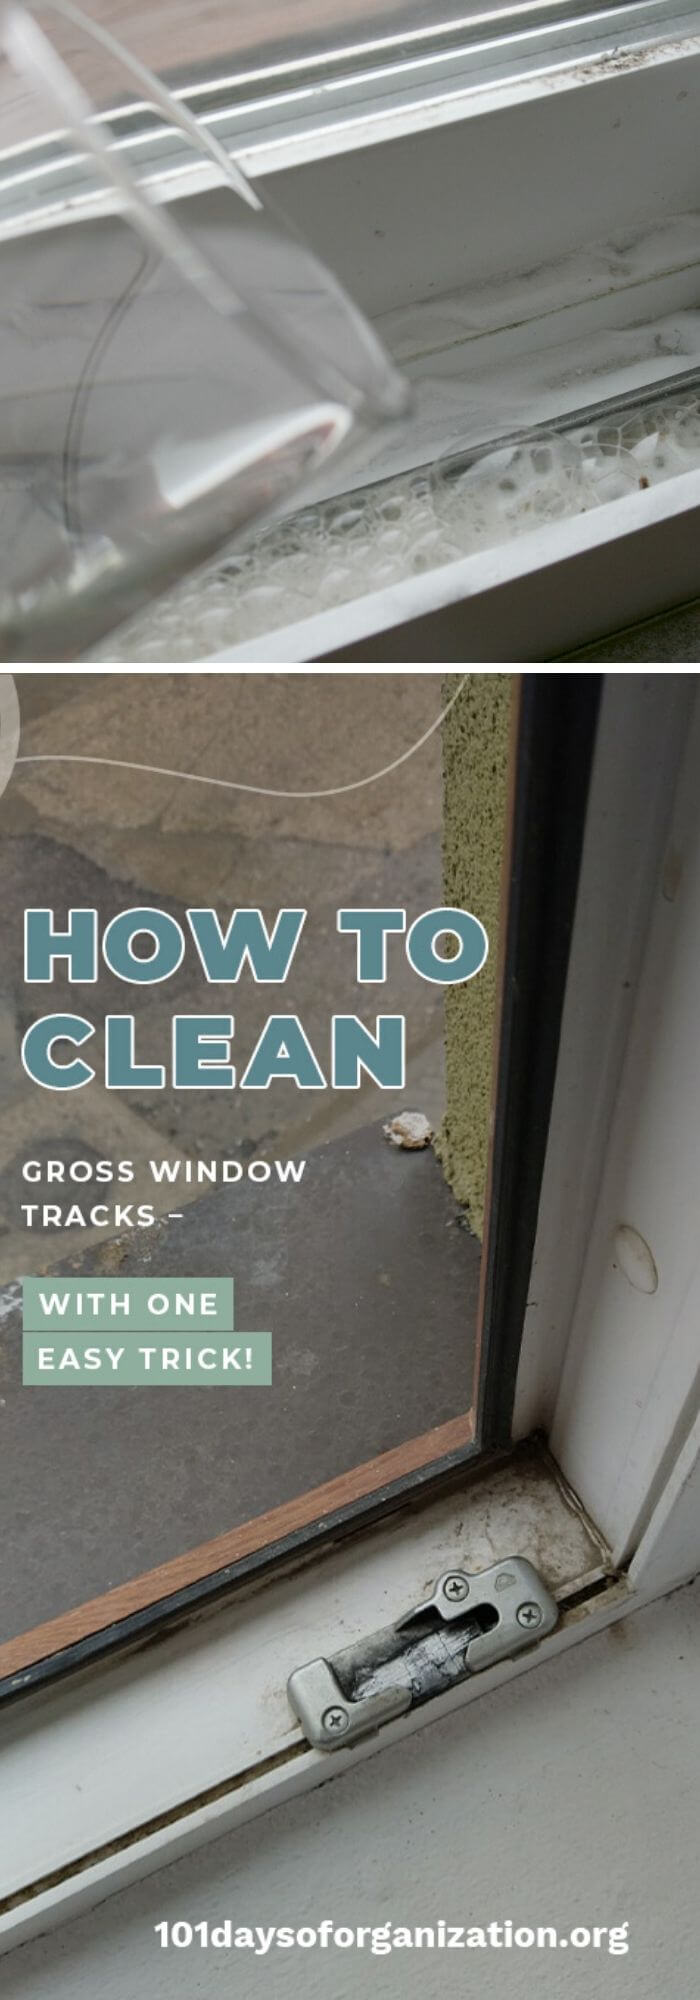 Use baking sodar and white vinegar to clean gross window tracks